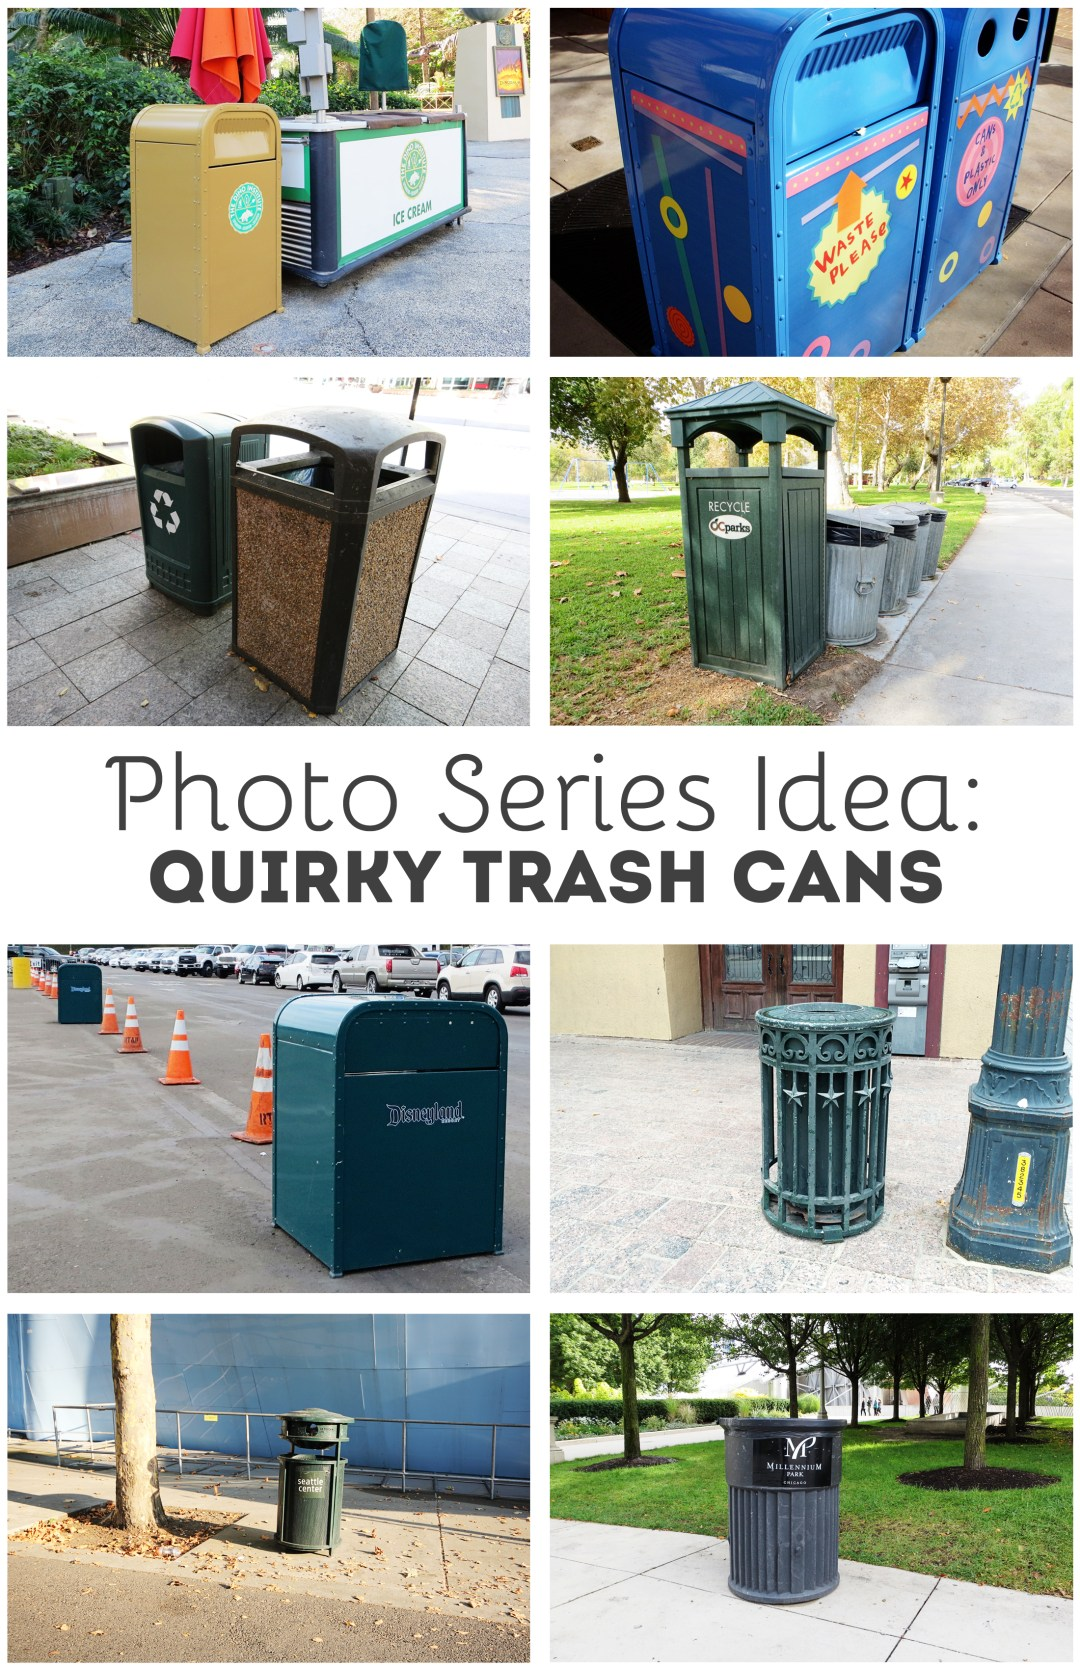 Photo Idea: Document Trash Cans - www.randomolive.com